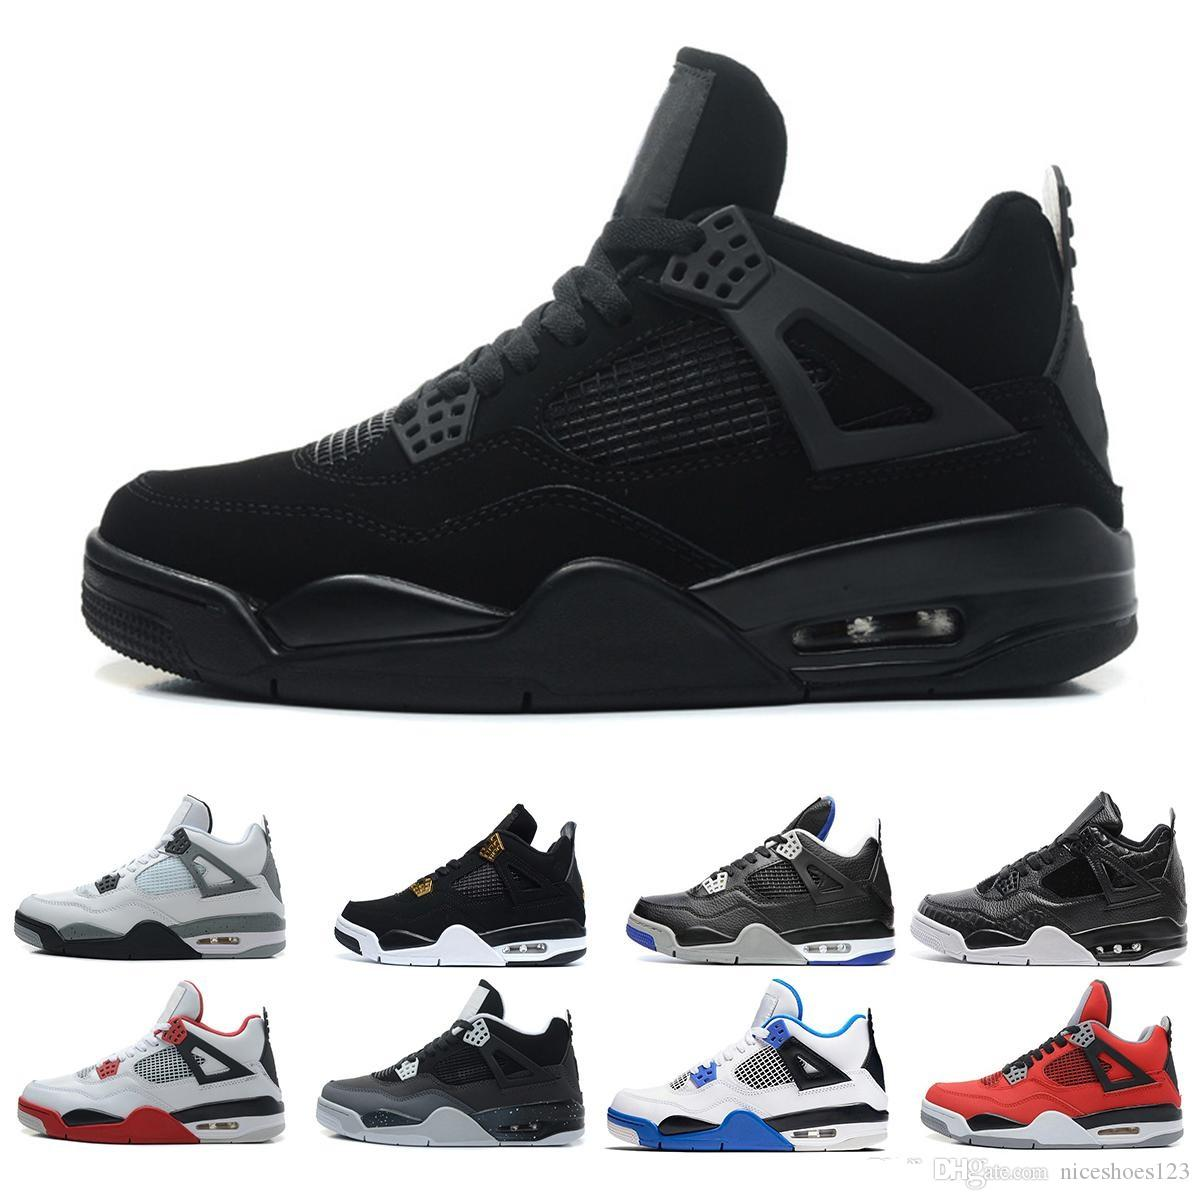 Classic 4 4s toro bravo fear pack white cement men women basketball shoes sneakers with top quality bred high sports shoes sizes 5.5-13